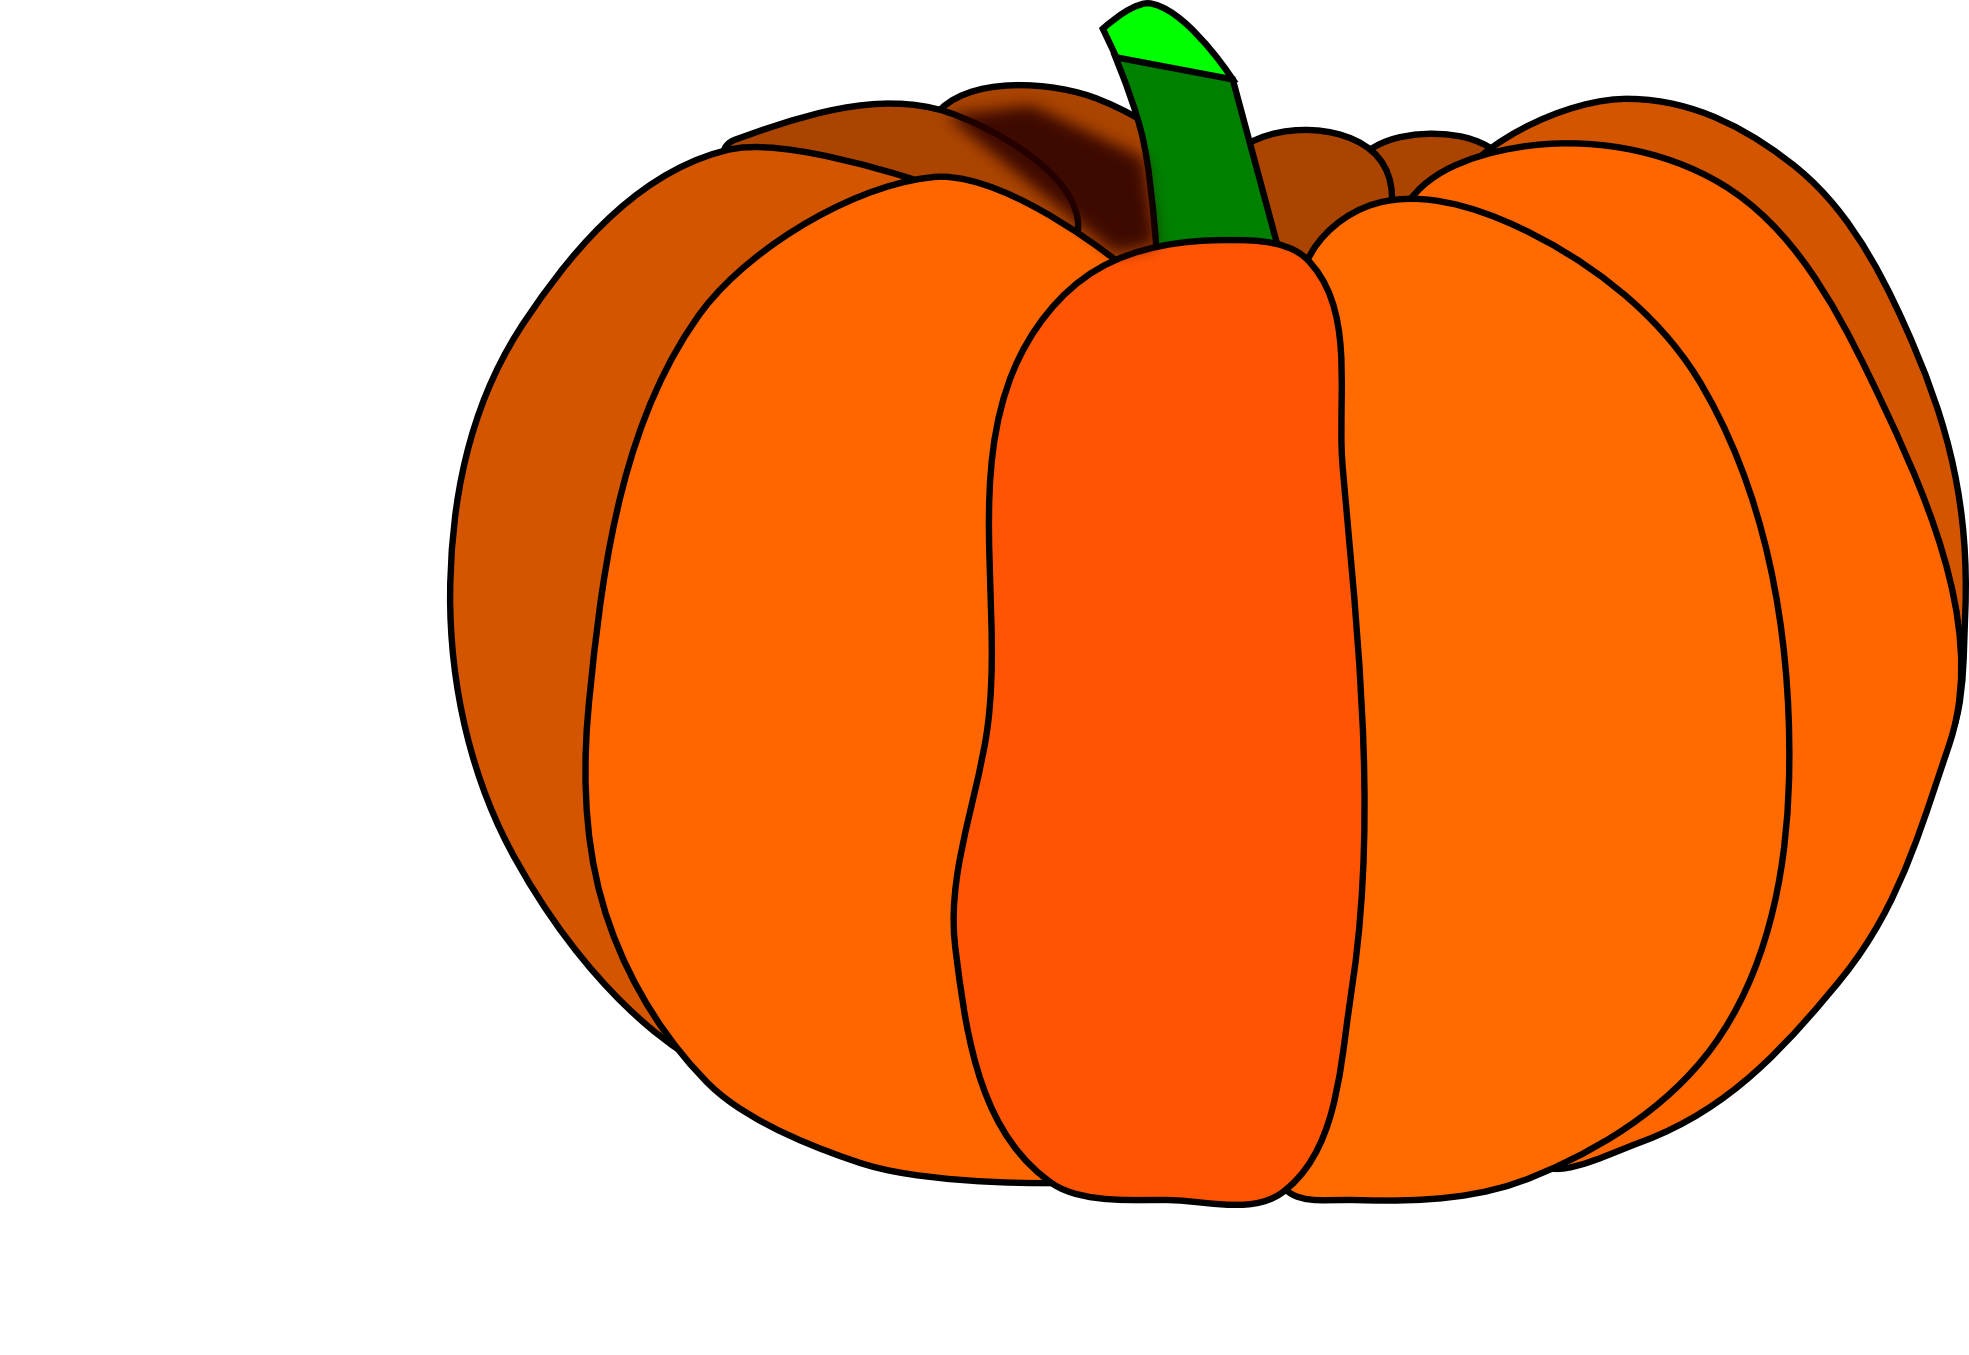 Halloween clipart pumpkin patch. Vine panda free images